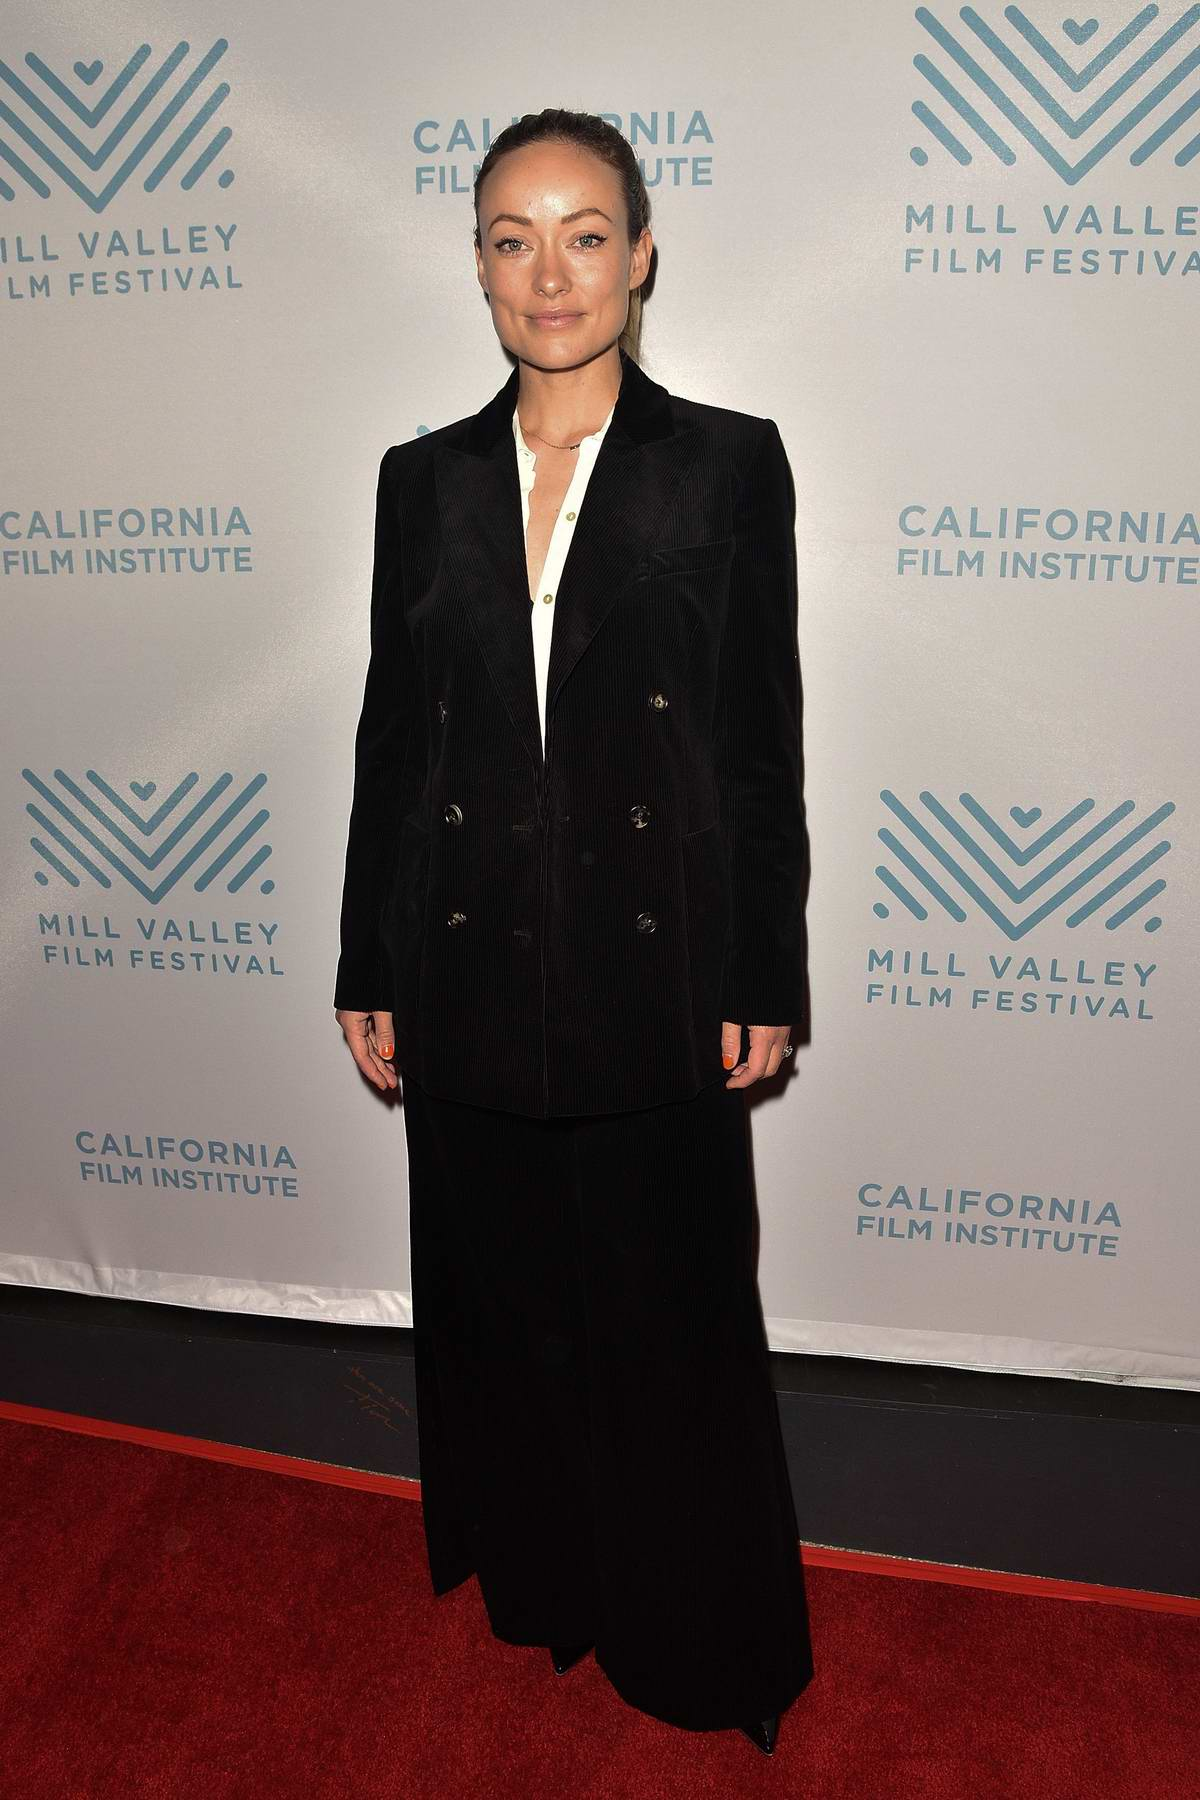 Olivia Wilde attends the 42nd Mill Valley Film Festival in Mill Valley, California